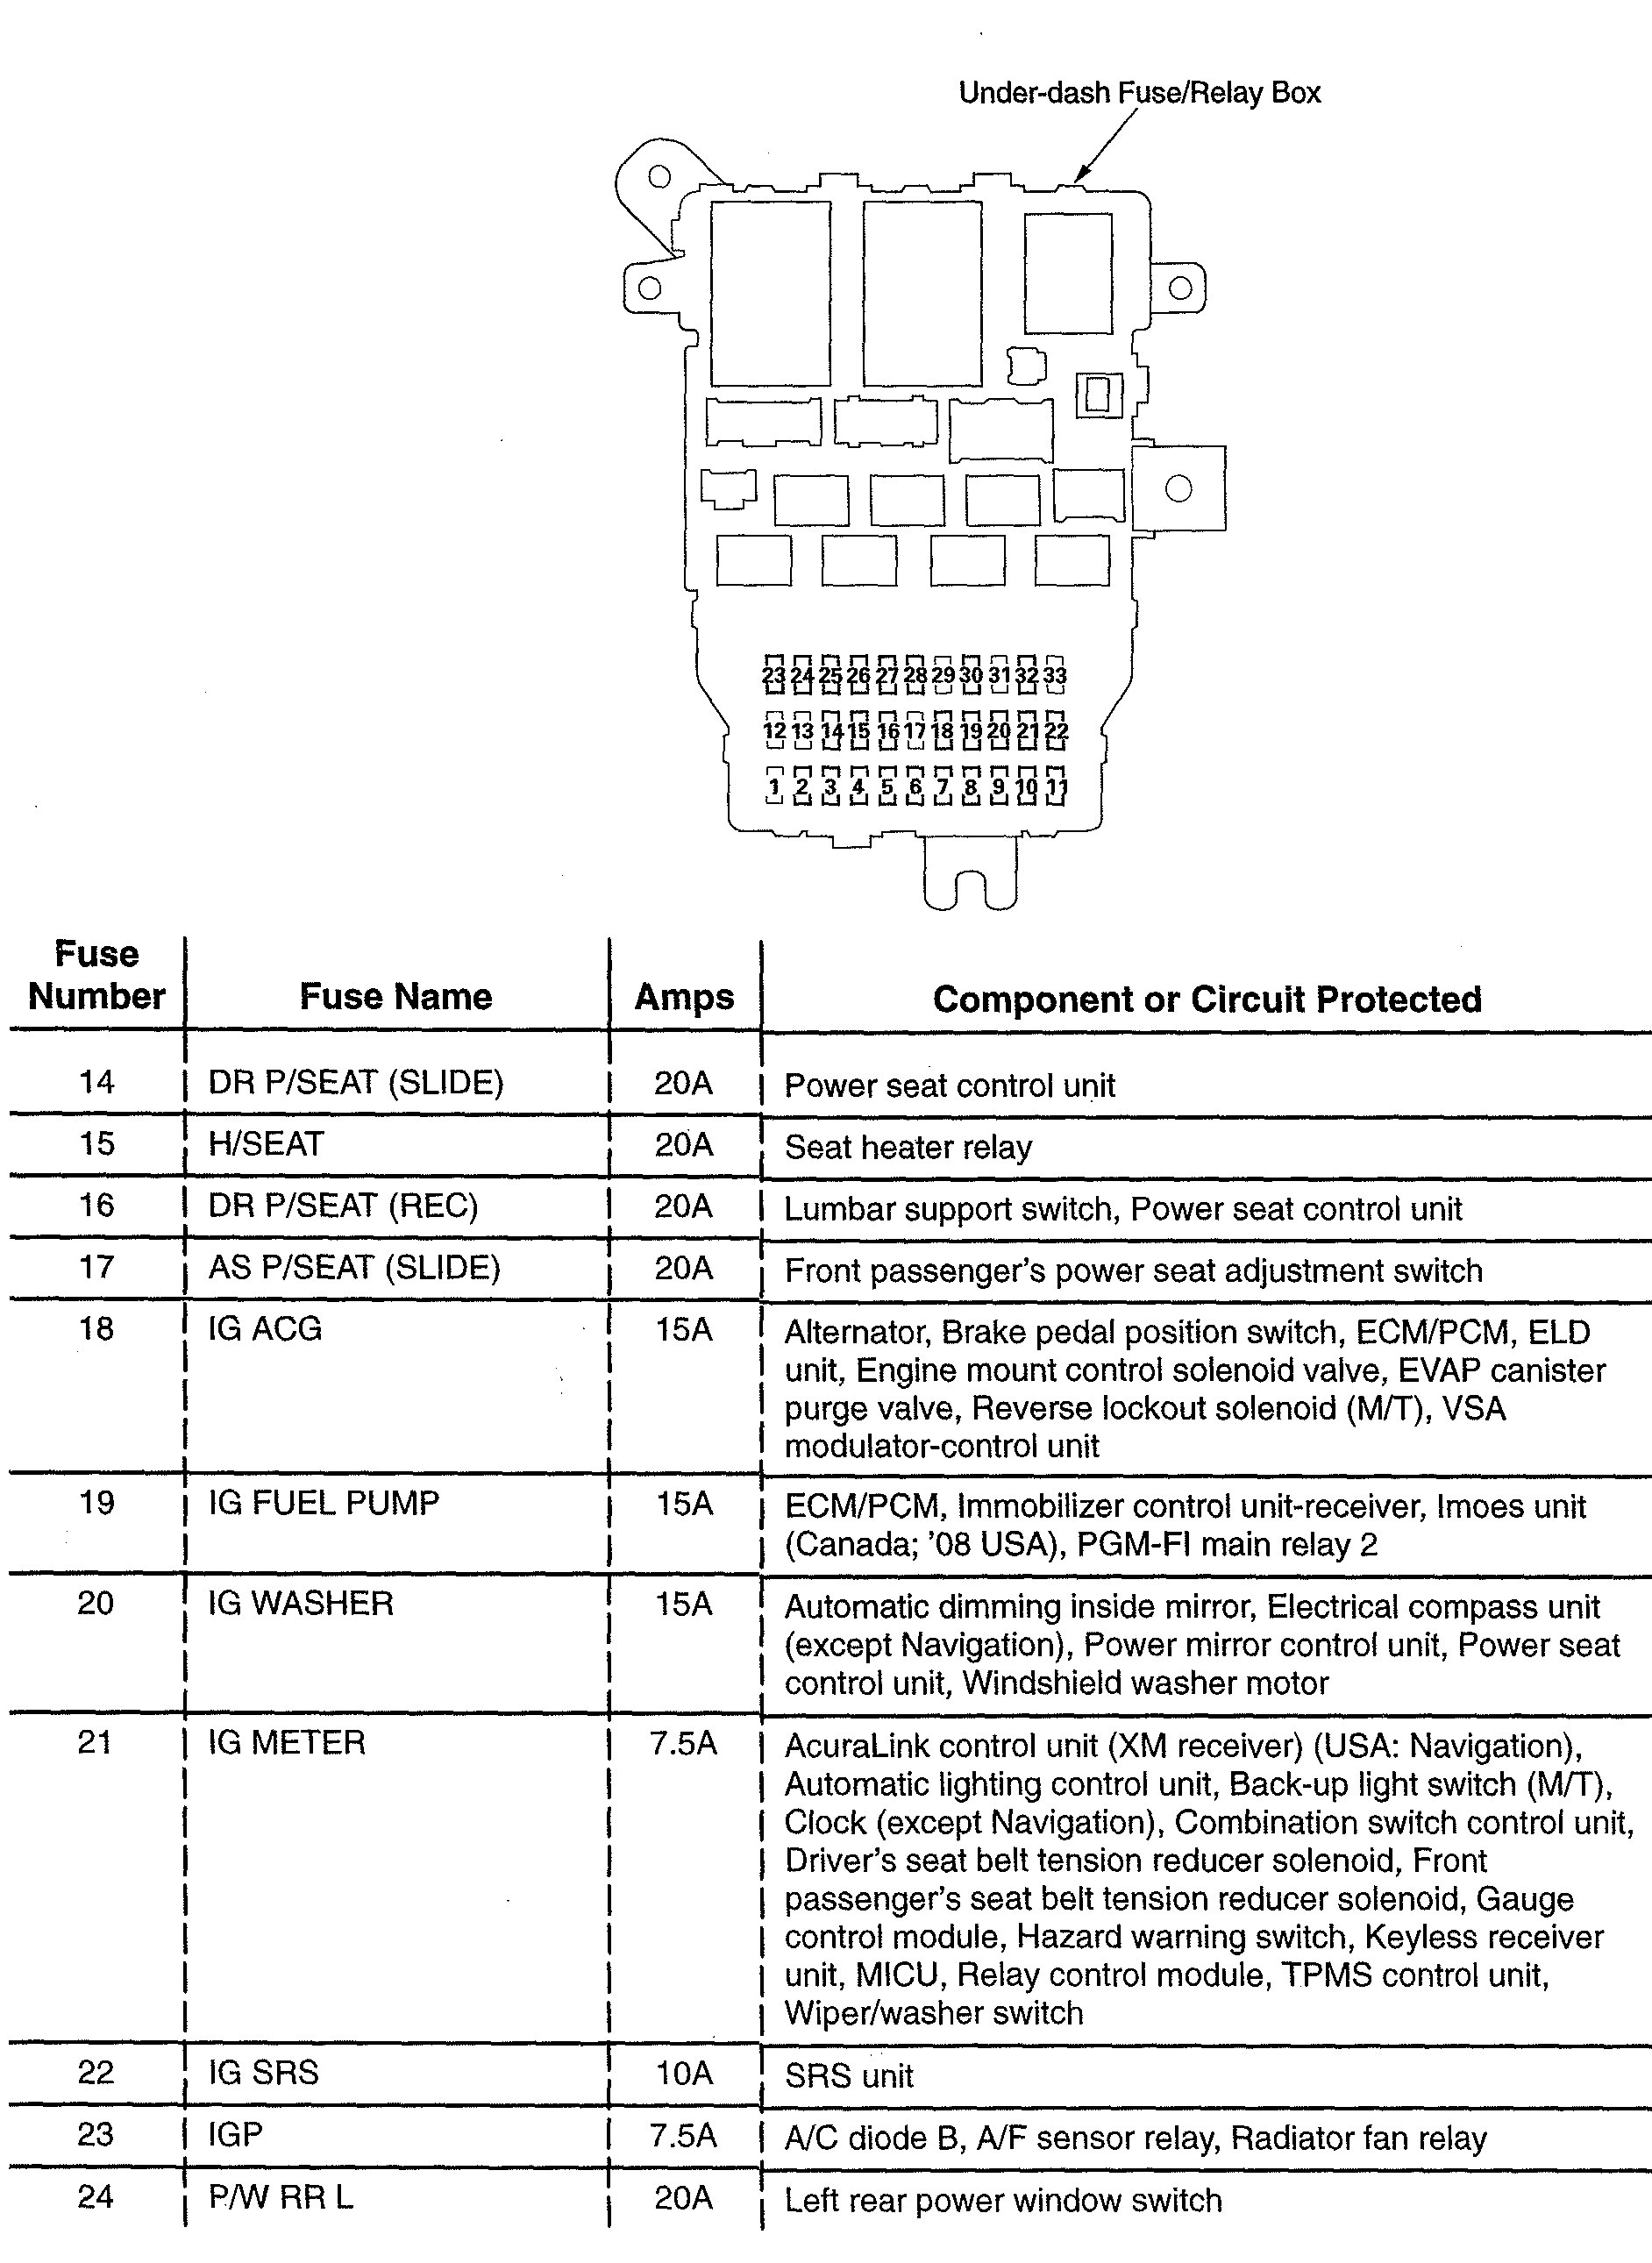 acura tl wiring diagram fuse panel 2 2008 acura tl (2008) wiring diagrams fuse panel carknowledge acura tl wiring diagram at gsmx.co